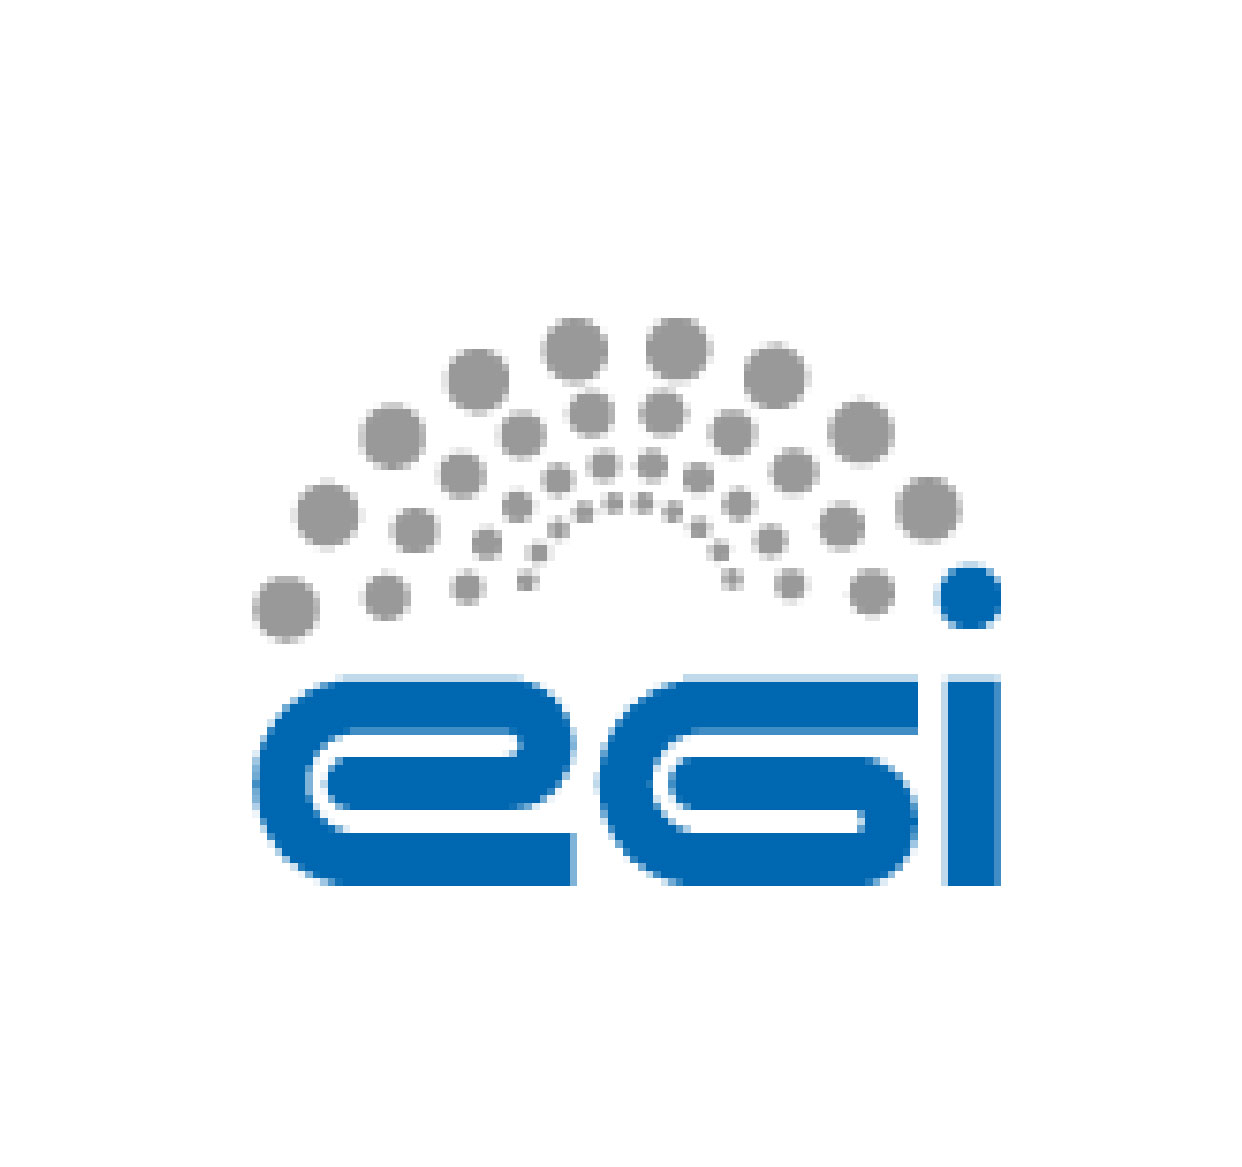 EGI - European Grid Initiative